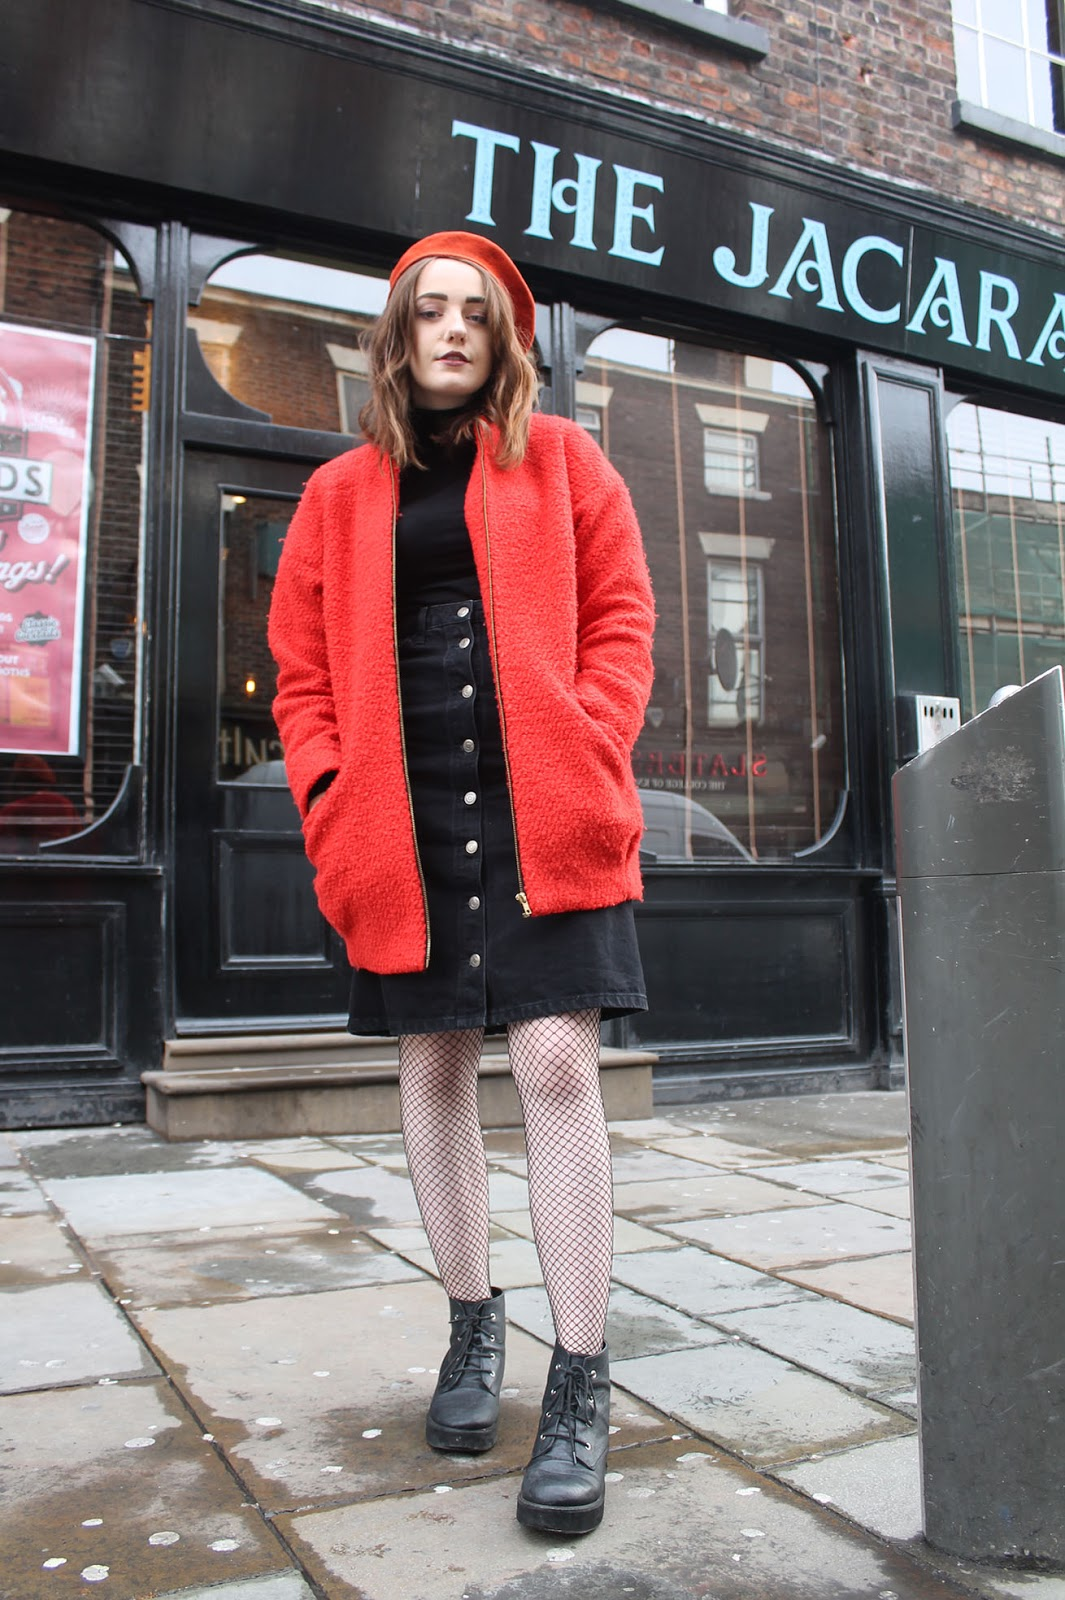 60s inspired outfit including orange Mary Quant beret, black polo neck jumper, black denim button up midi skirt, orange boucle pea coat, fishnet tights and black lace up boots